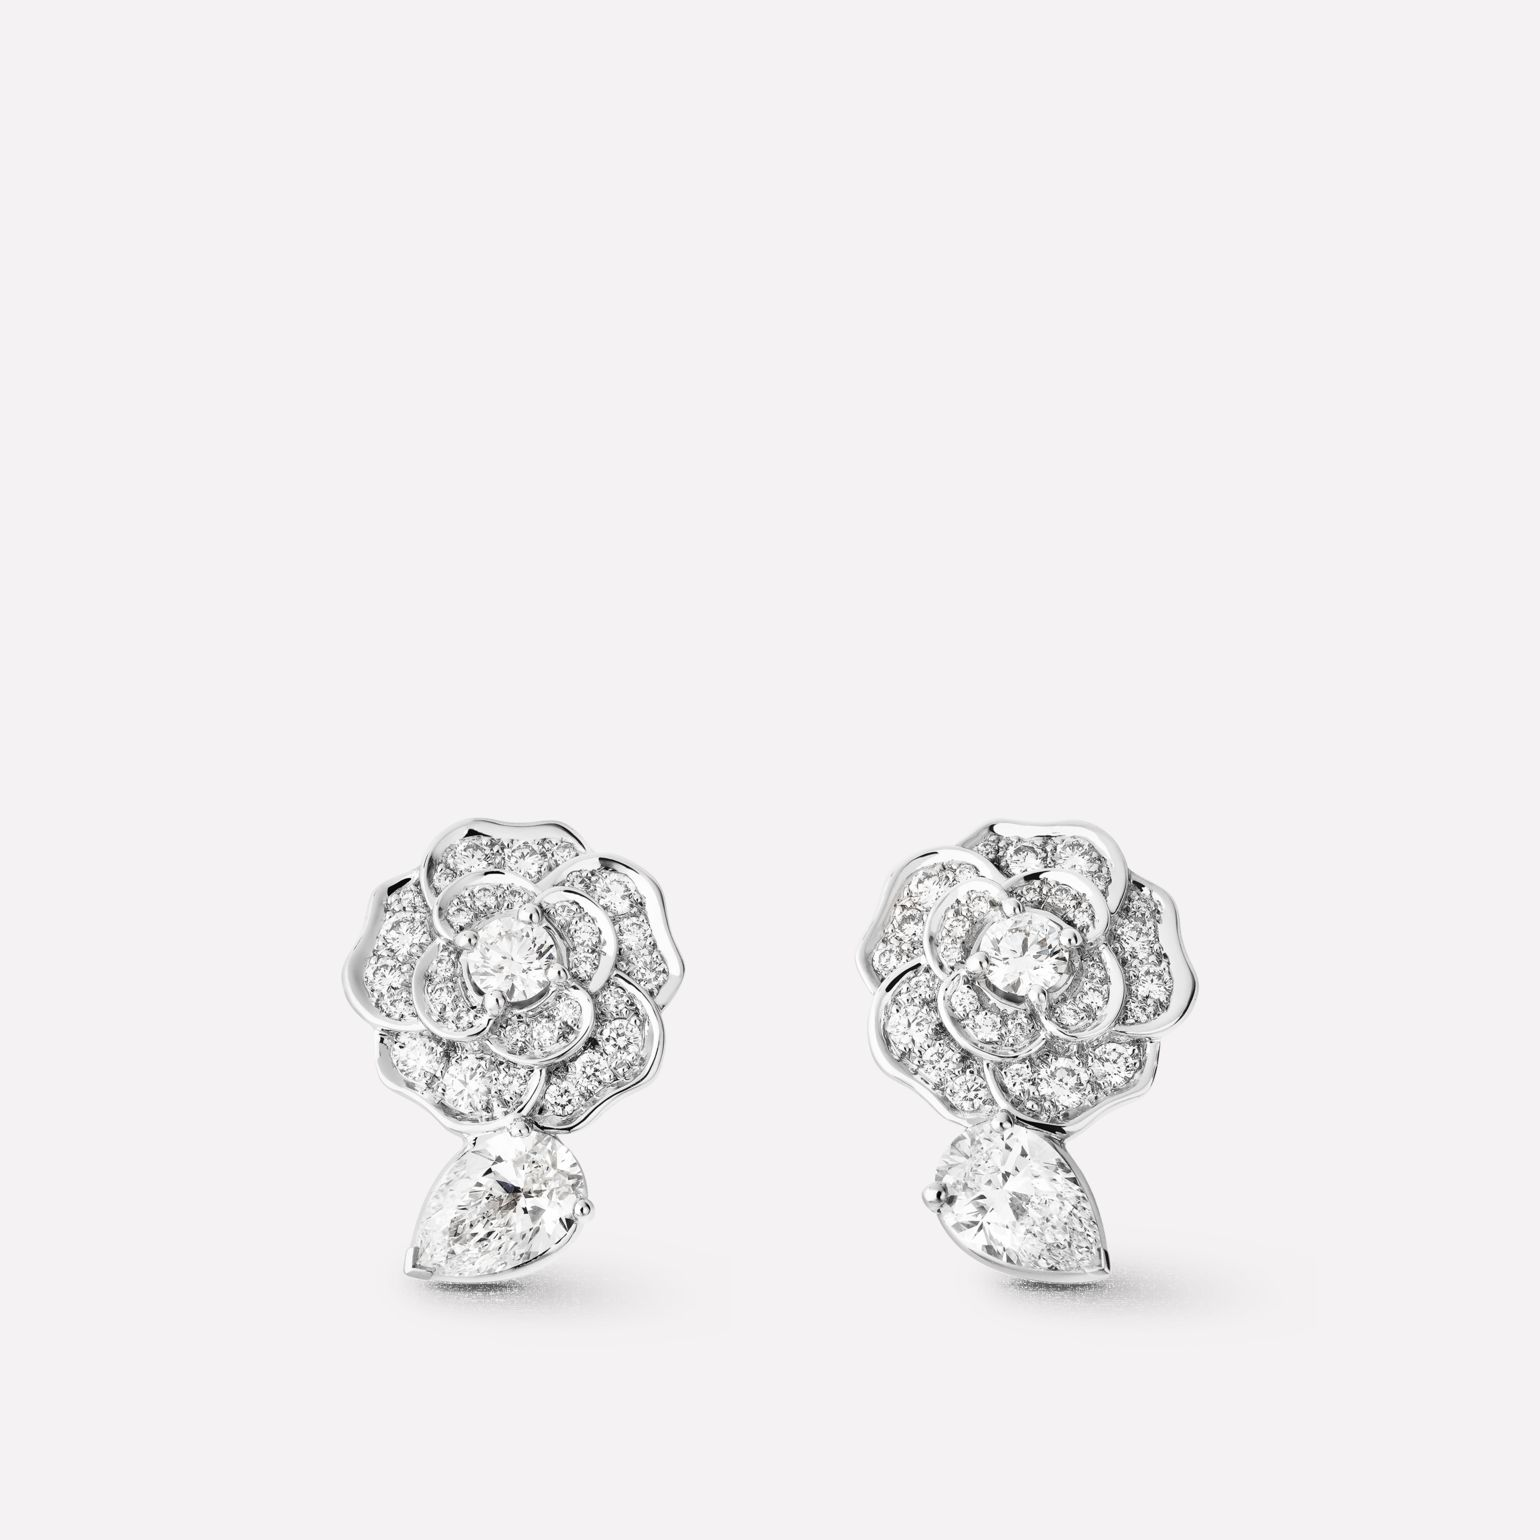 Camélia Earrings Précieux In 18k White Gold And Diamonds With Centre